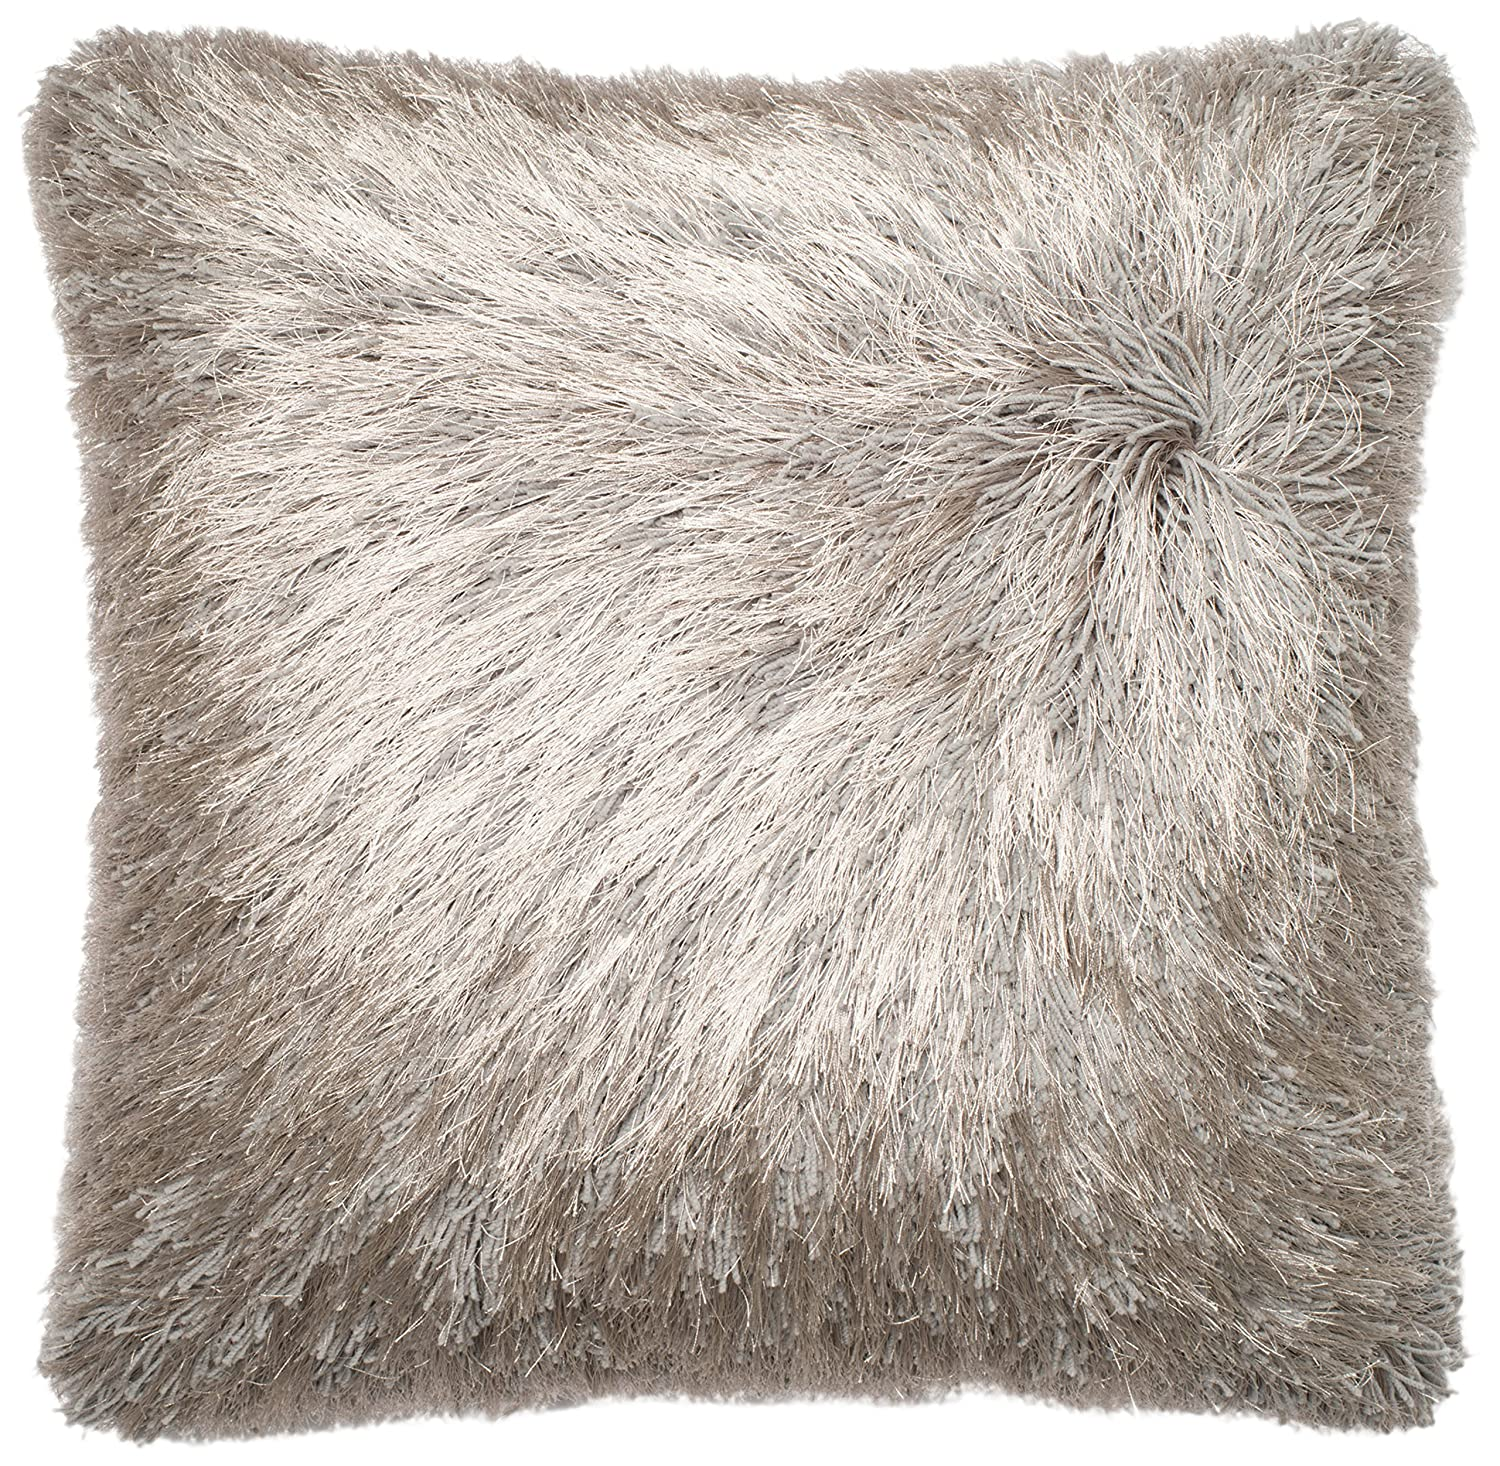 Loloi 1 Polyester Cover and Fill Decorative Accent Pillow 22 x 22 Red Loloi Rugs Inc PSETP0245RE00PIL3